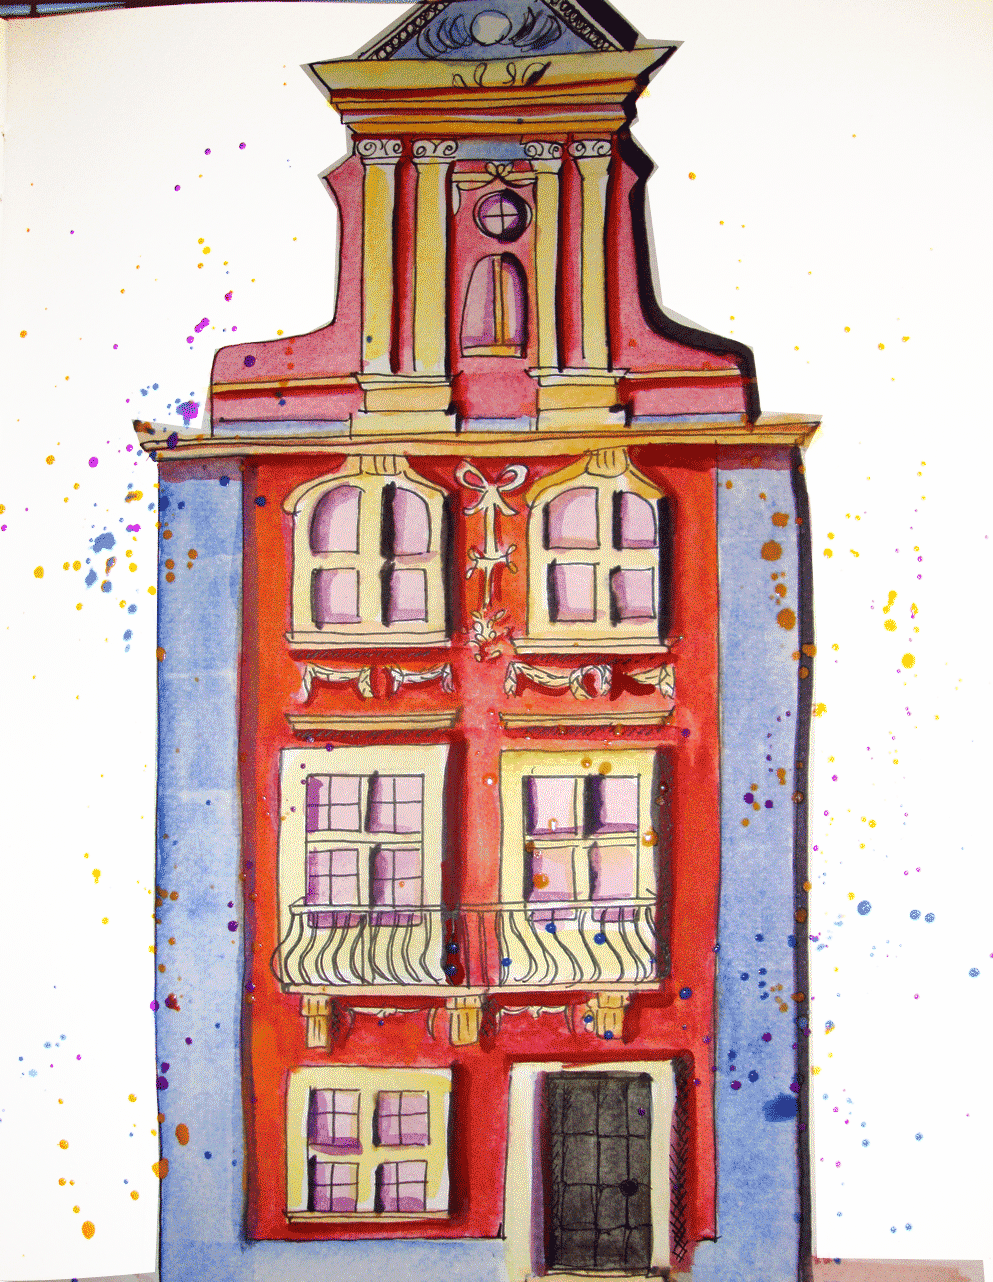 A DREAM HOUSE  - image 3 - student project